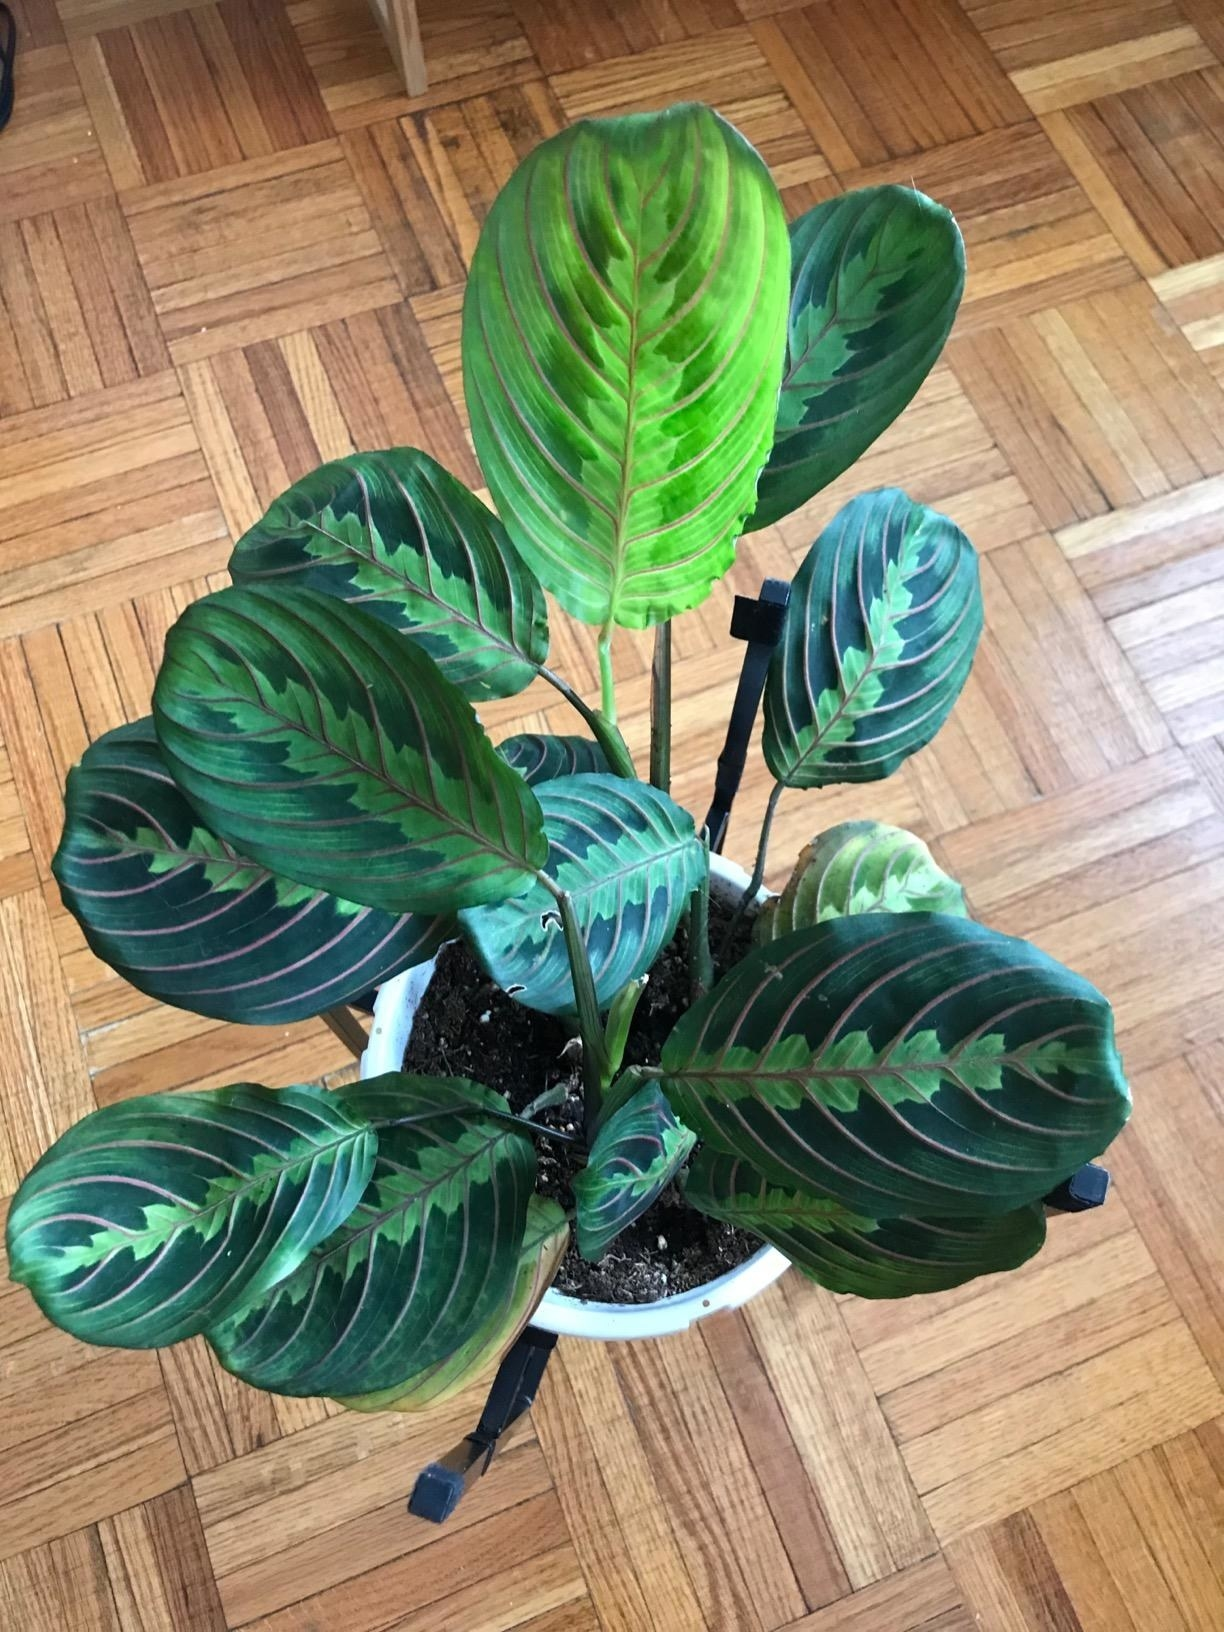 "Promising review: ""Probably one of my all time favorite plants!! So beautiful and I love that it 'prays' at night. I have found that these really like to be grouped with other plants and kept in areas of high humidity. I have mine in the bathroom with other plants and also sitting in a tray or rocks with water. It has grown tons of new leaves and has even flowered. Love this plant and highly recommend it."" —Courtney RaoGet it from Amazon for $15.54."